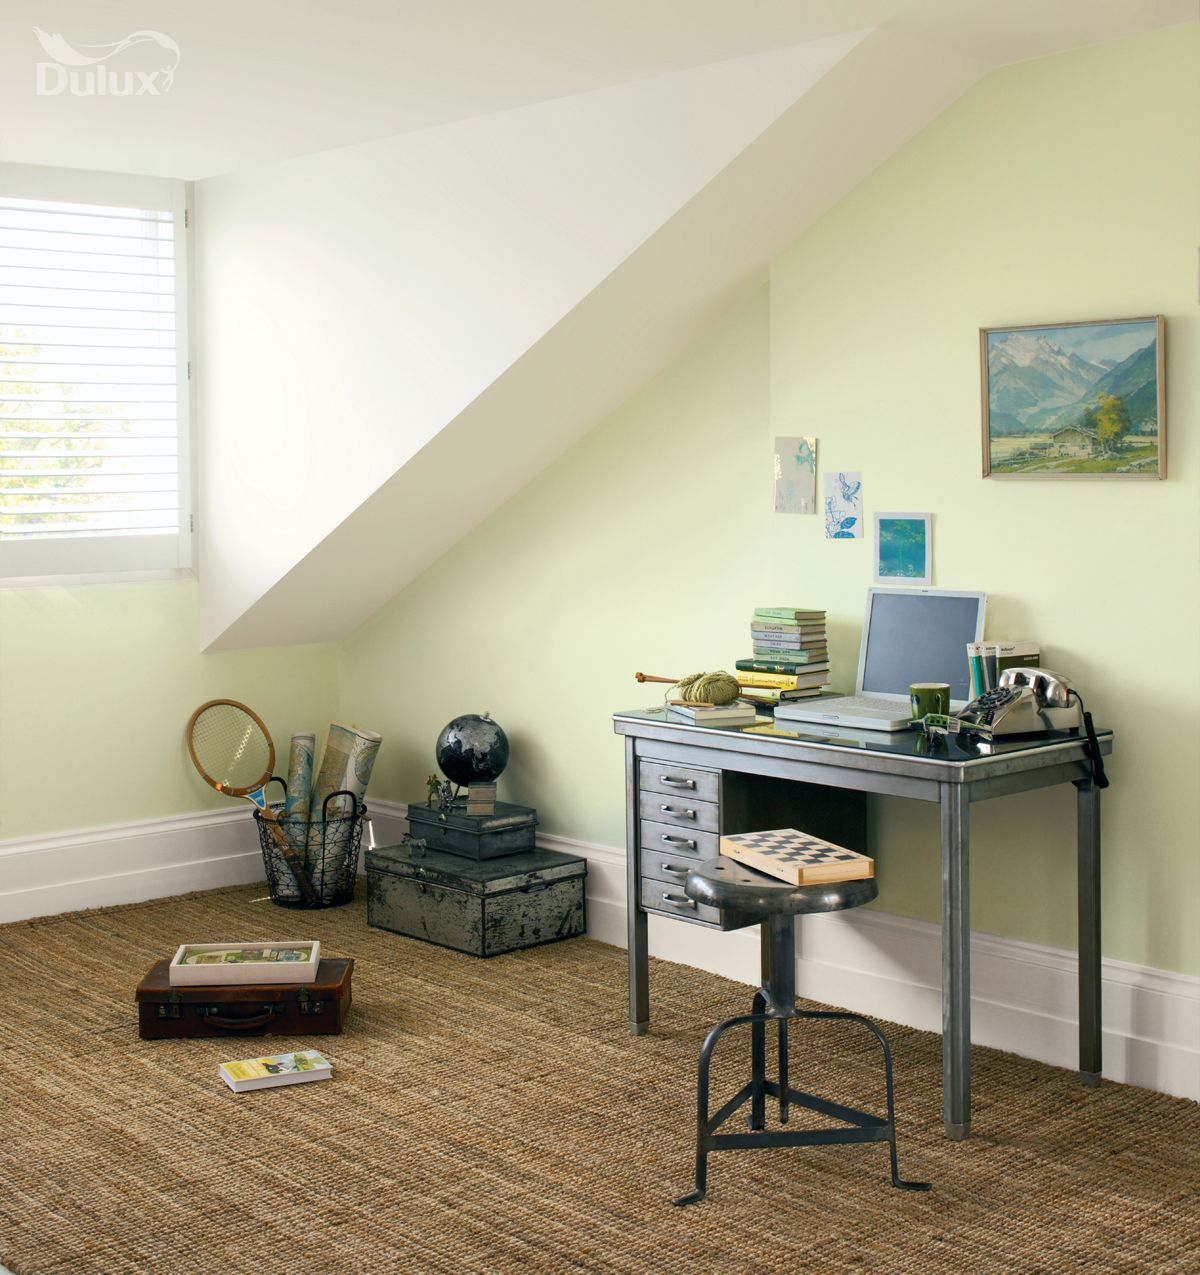 Best Dulux Light Space Tm Helps Open Up Small Dark Areas 400 x 300